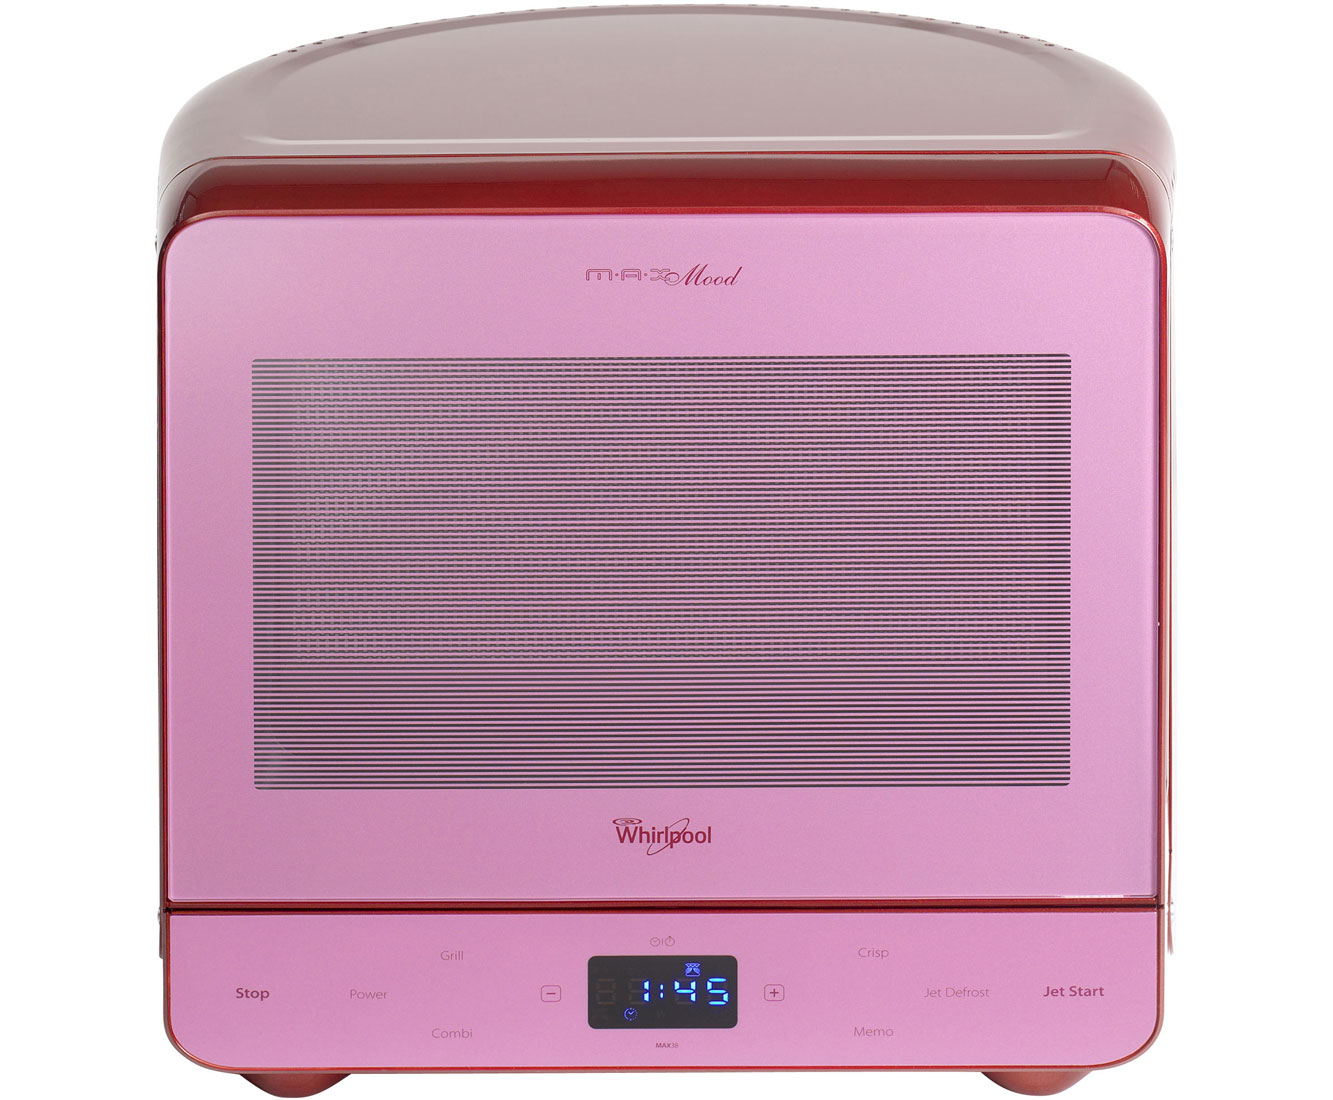 Whirlpool Mood MAX38SMG 13 Litre Microwave With Grill - Vibrant Red